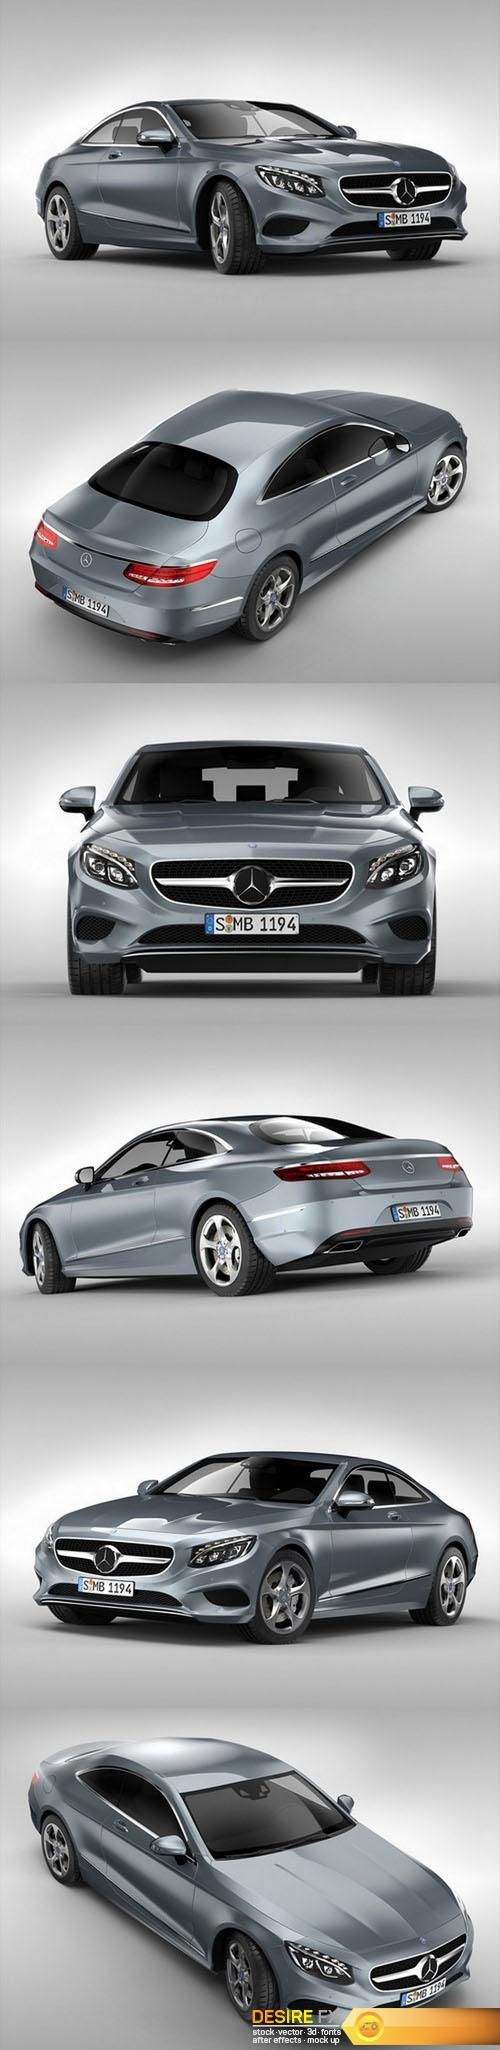 3d-models - Mercedes Benz S Class Coupe 2015 3D Model